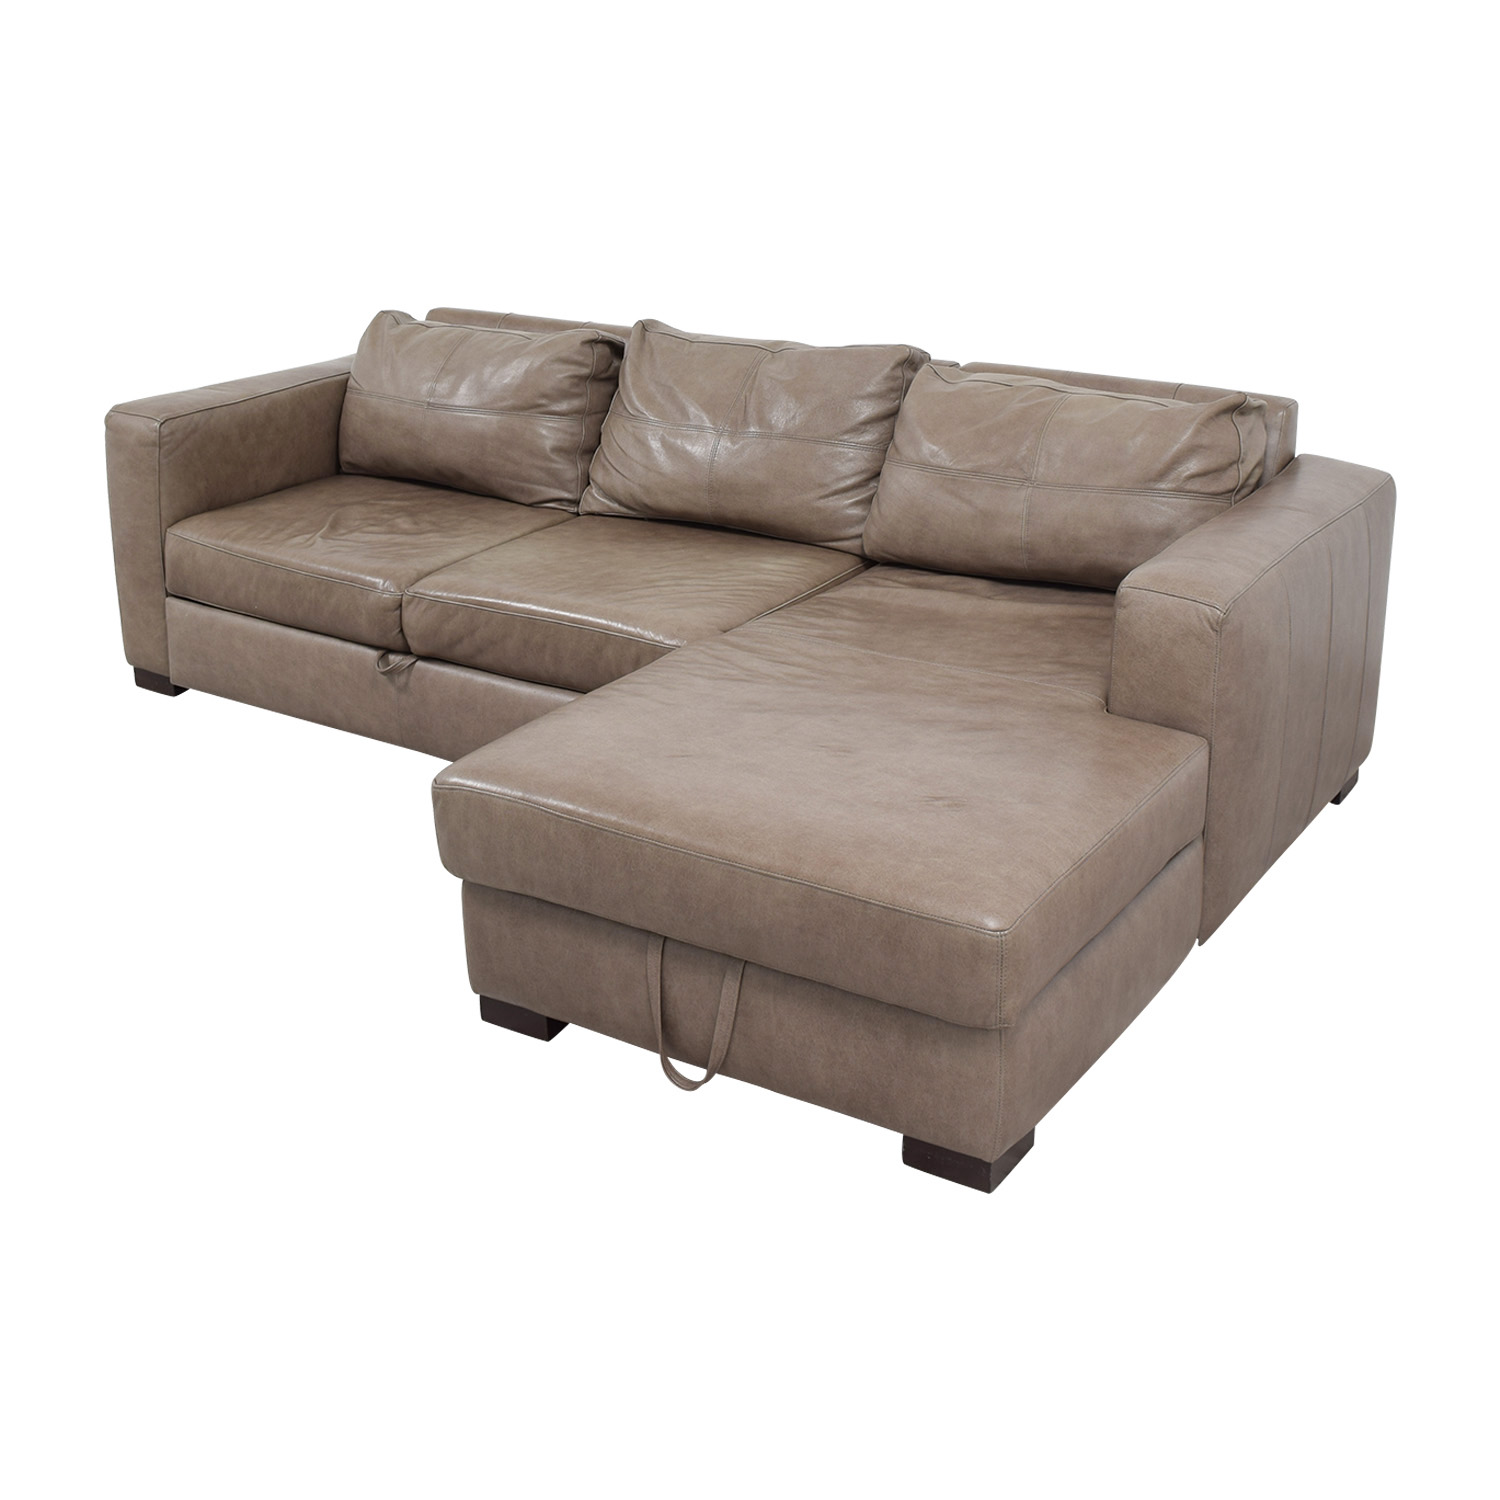 Arhaus Arhaus Grey Soft Leather Convertible Sleeper Sofa discount